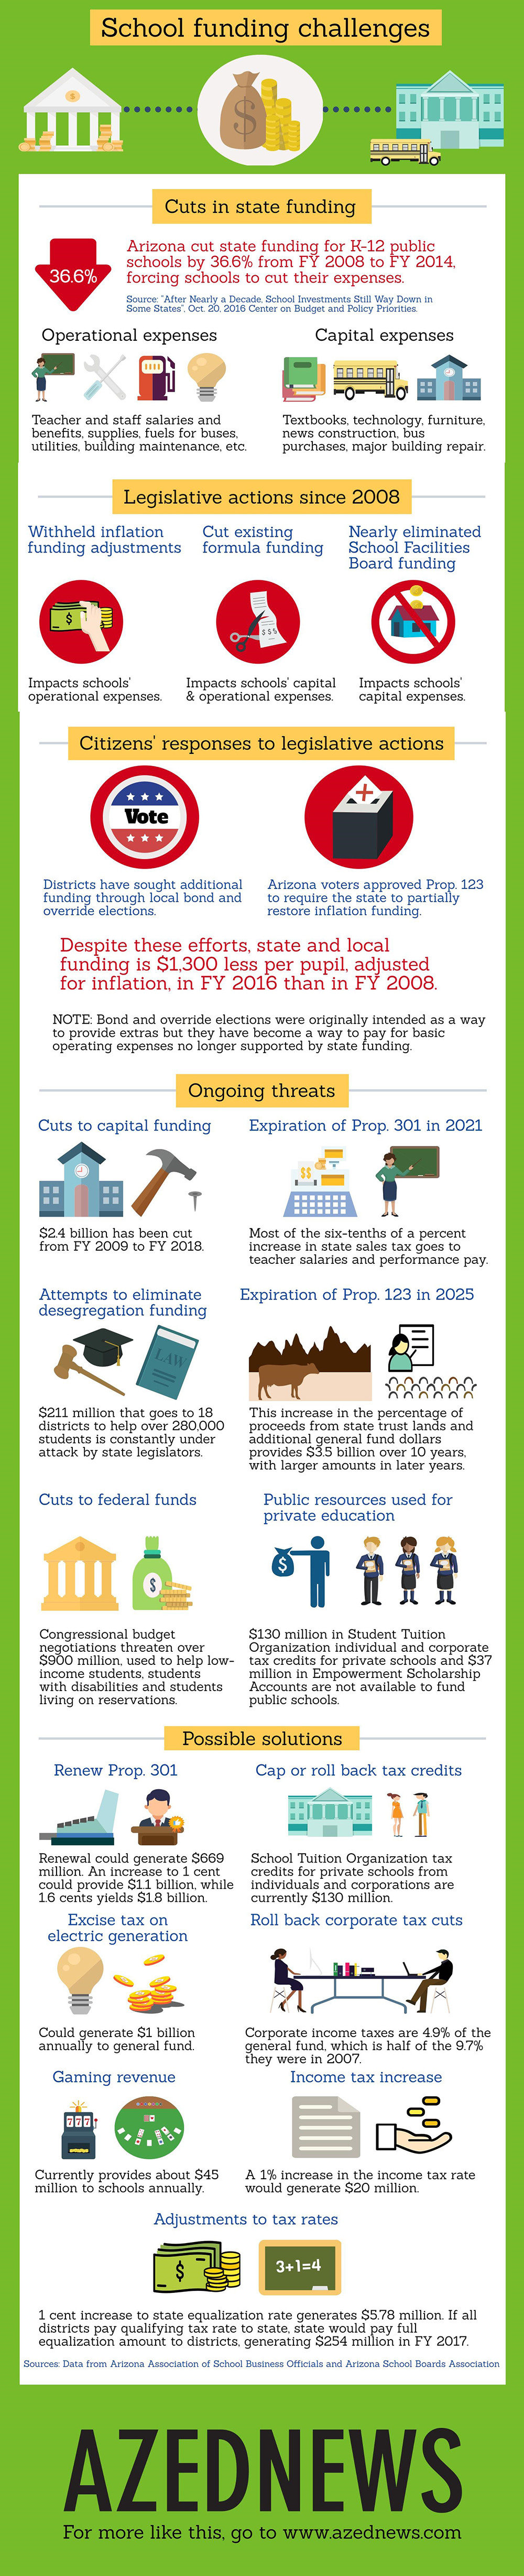 AZ school funding challenges & possible solutions AZEdNewsSchoolFundingFinalInfographic-1